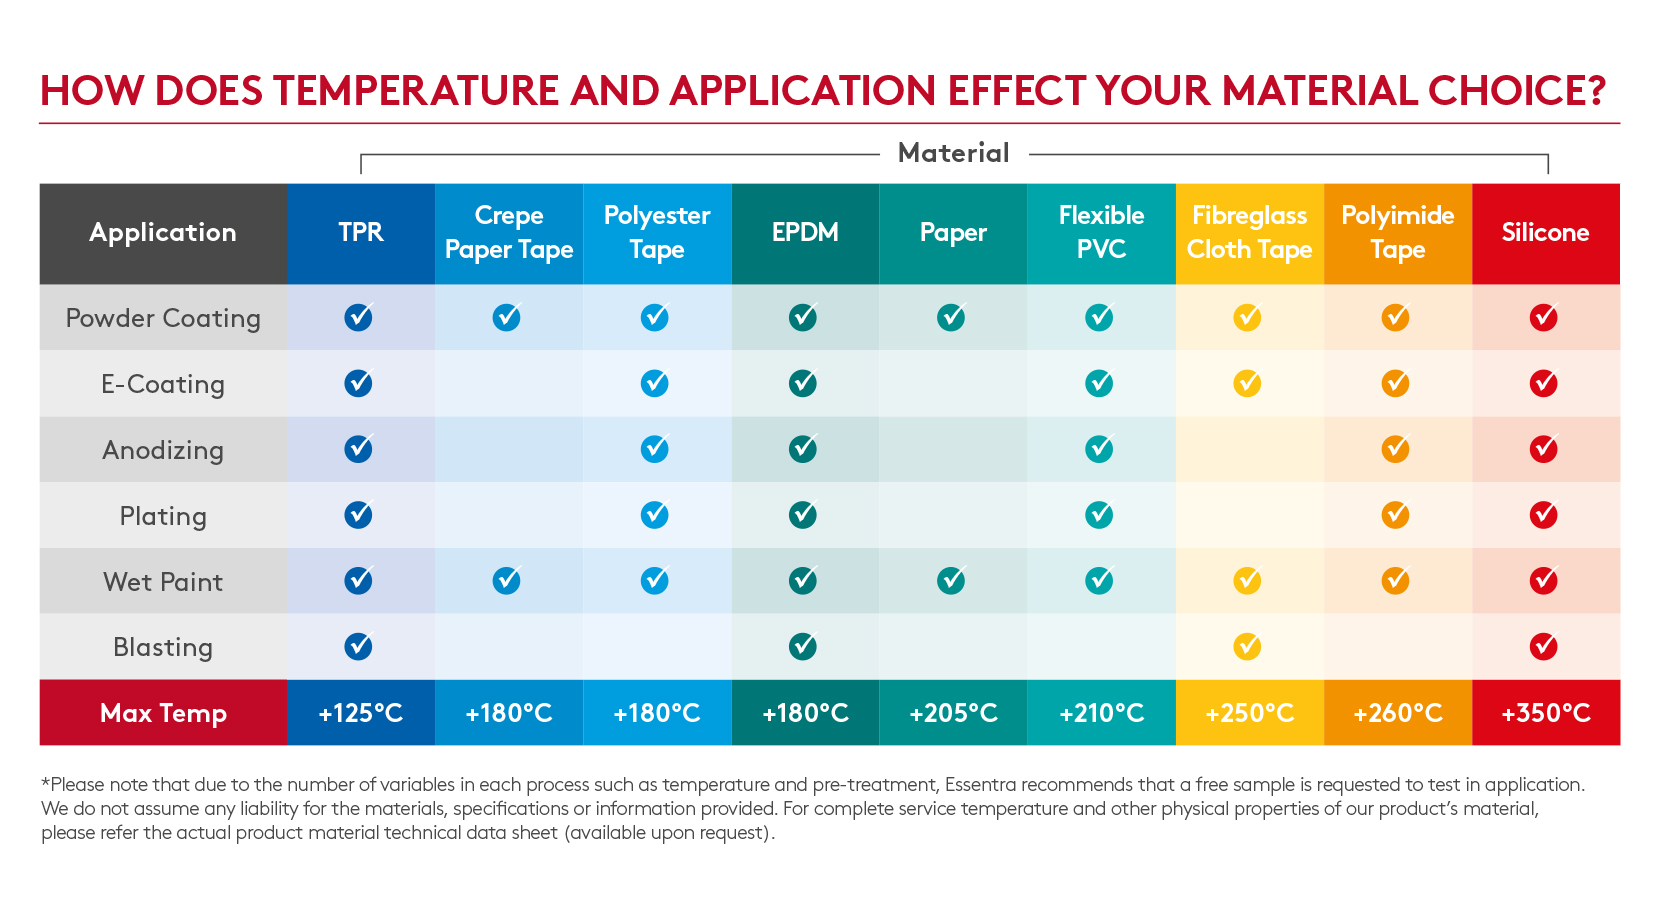 How does temperature and application effect masking material choice?